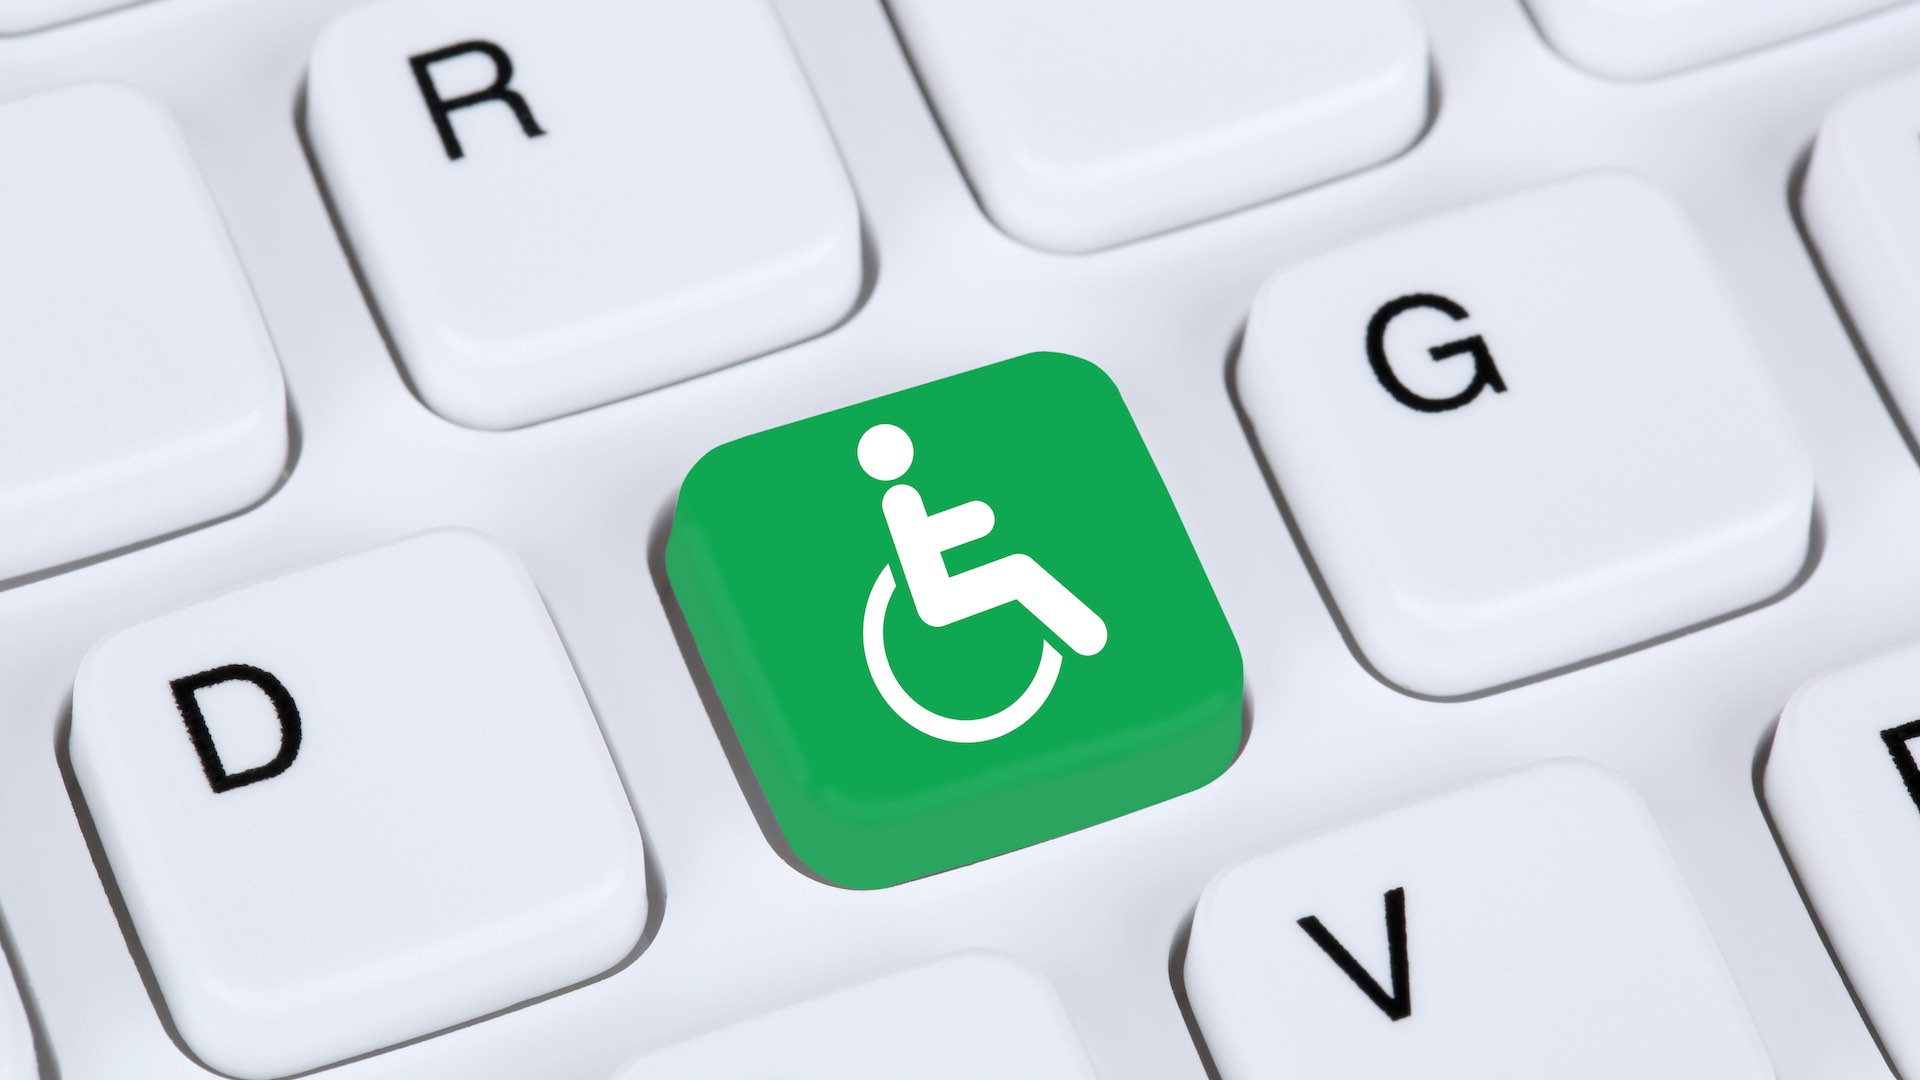 Web accessibility online on internet website computer for people with disabilities